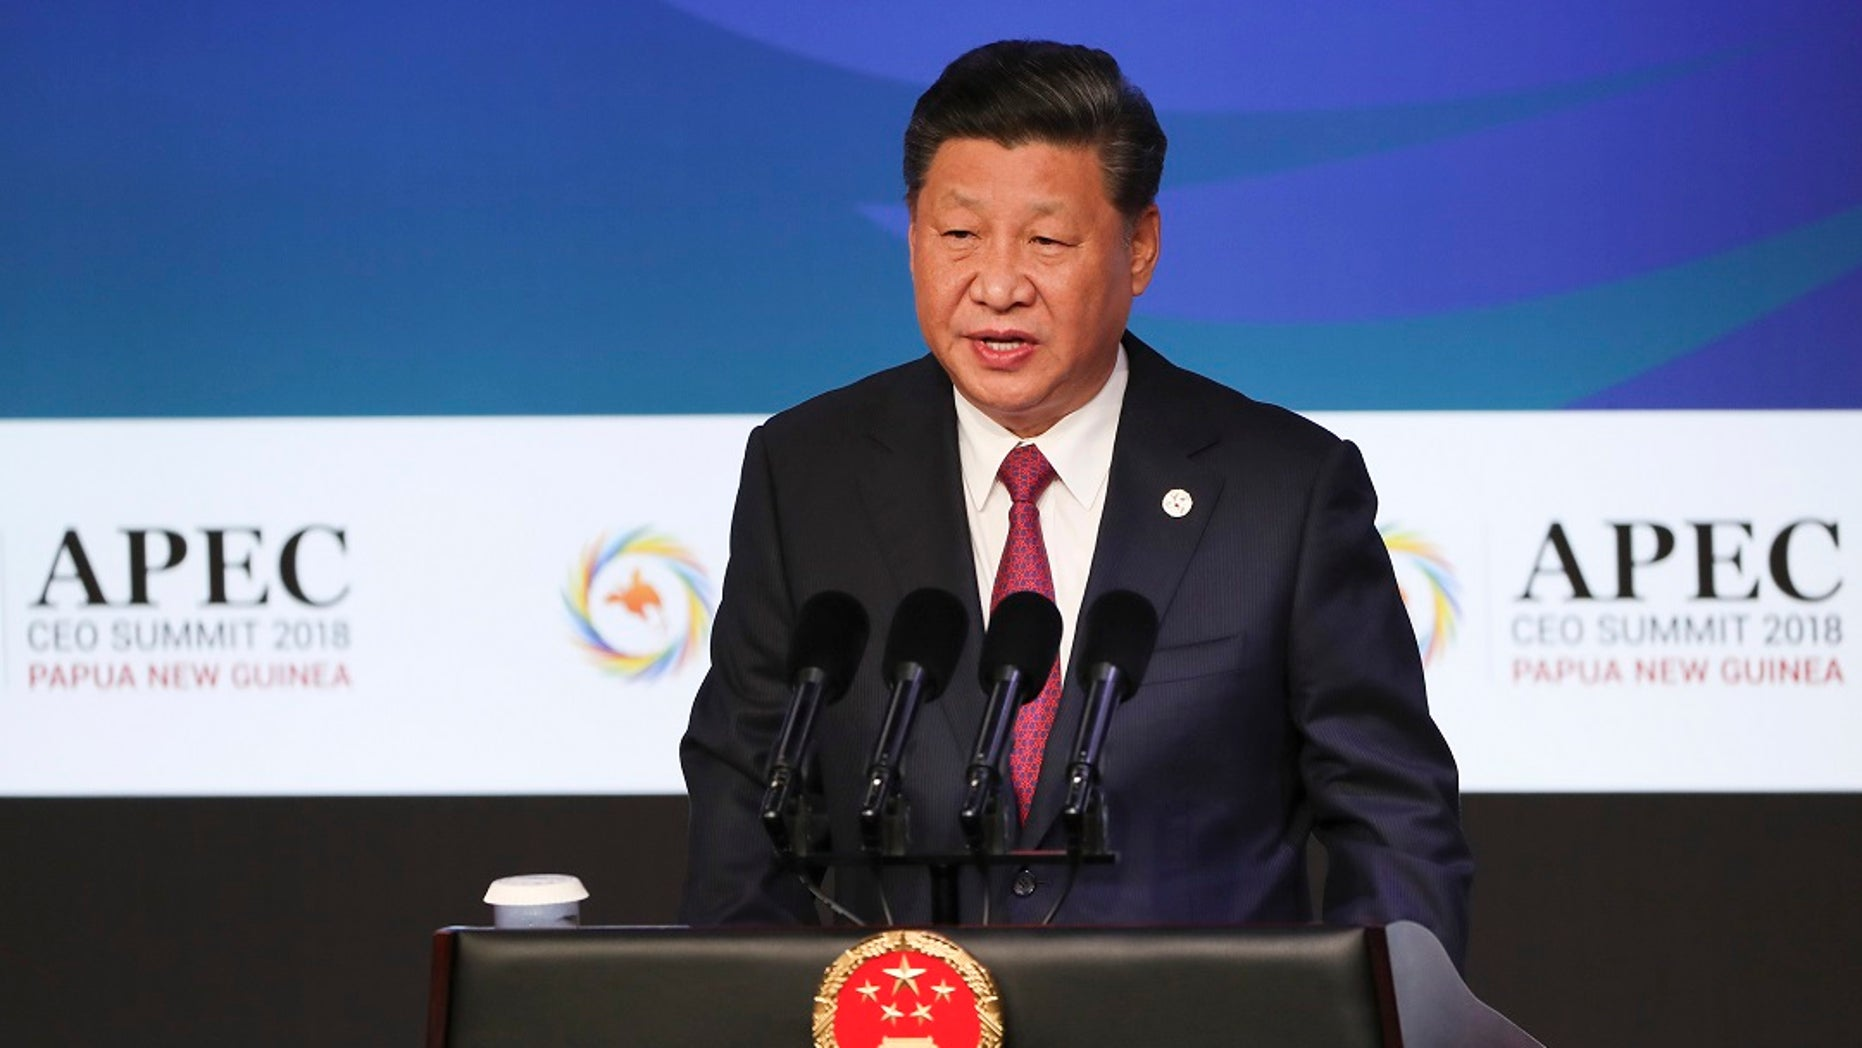 China's President Xi Jinping speaks during the APEC CEO Summit 2018 in Port Moresby, Papua New Guinea.